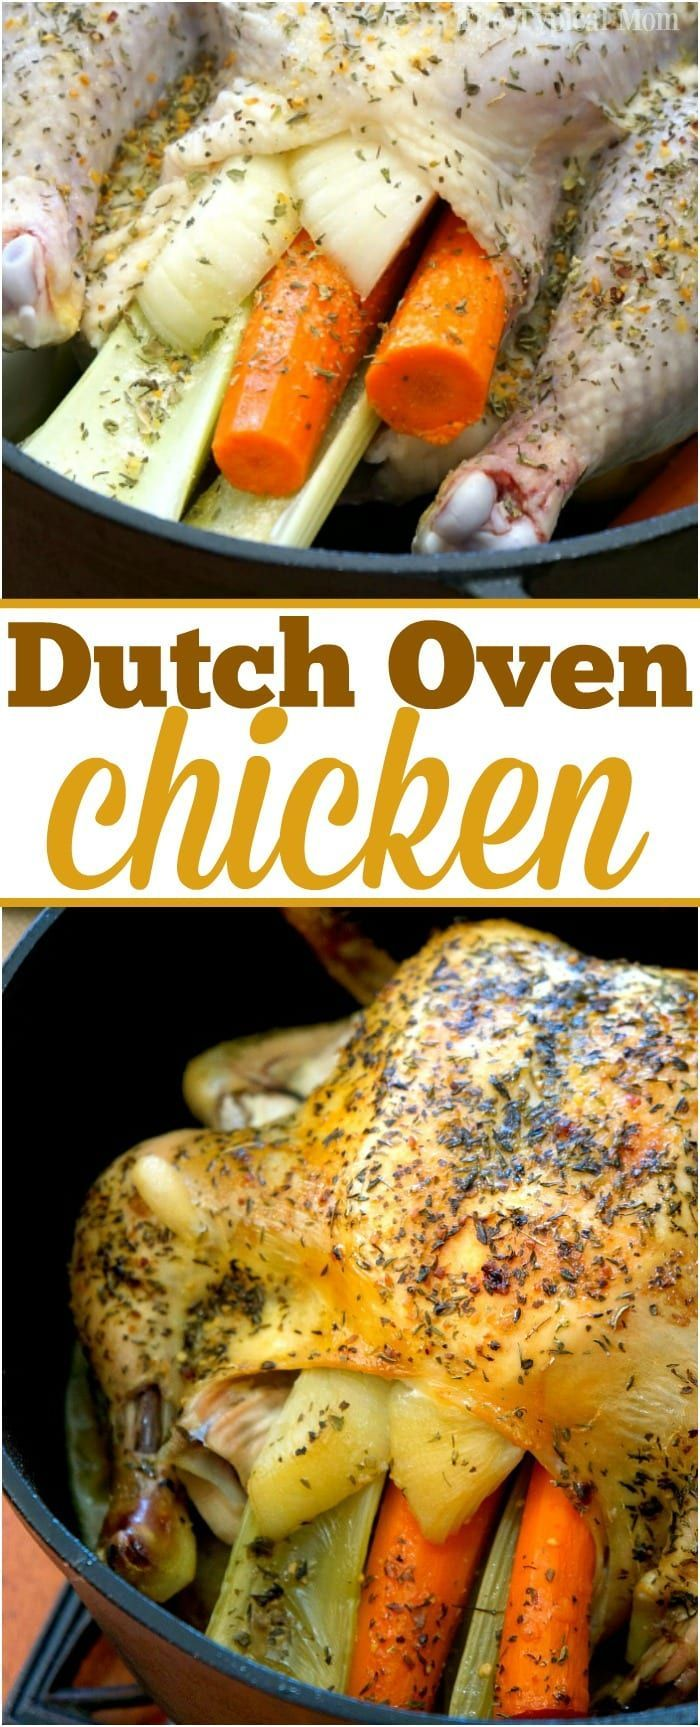 Dutch Oven Whole Chicken Is Amazing Super Easy And Flavorful Using This Method Tender Oven